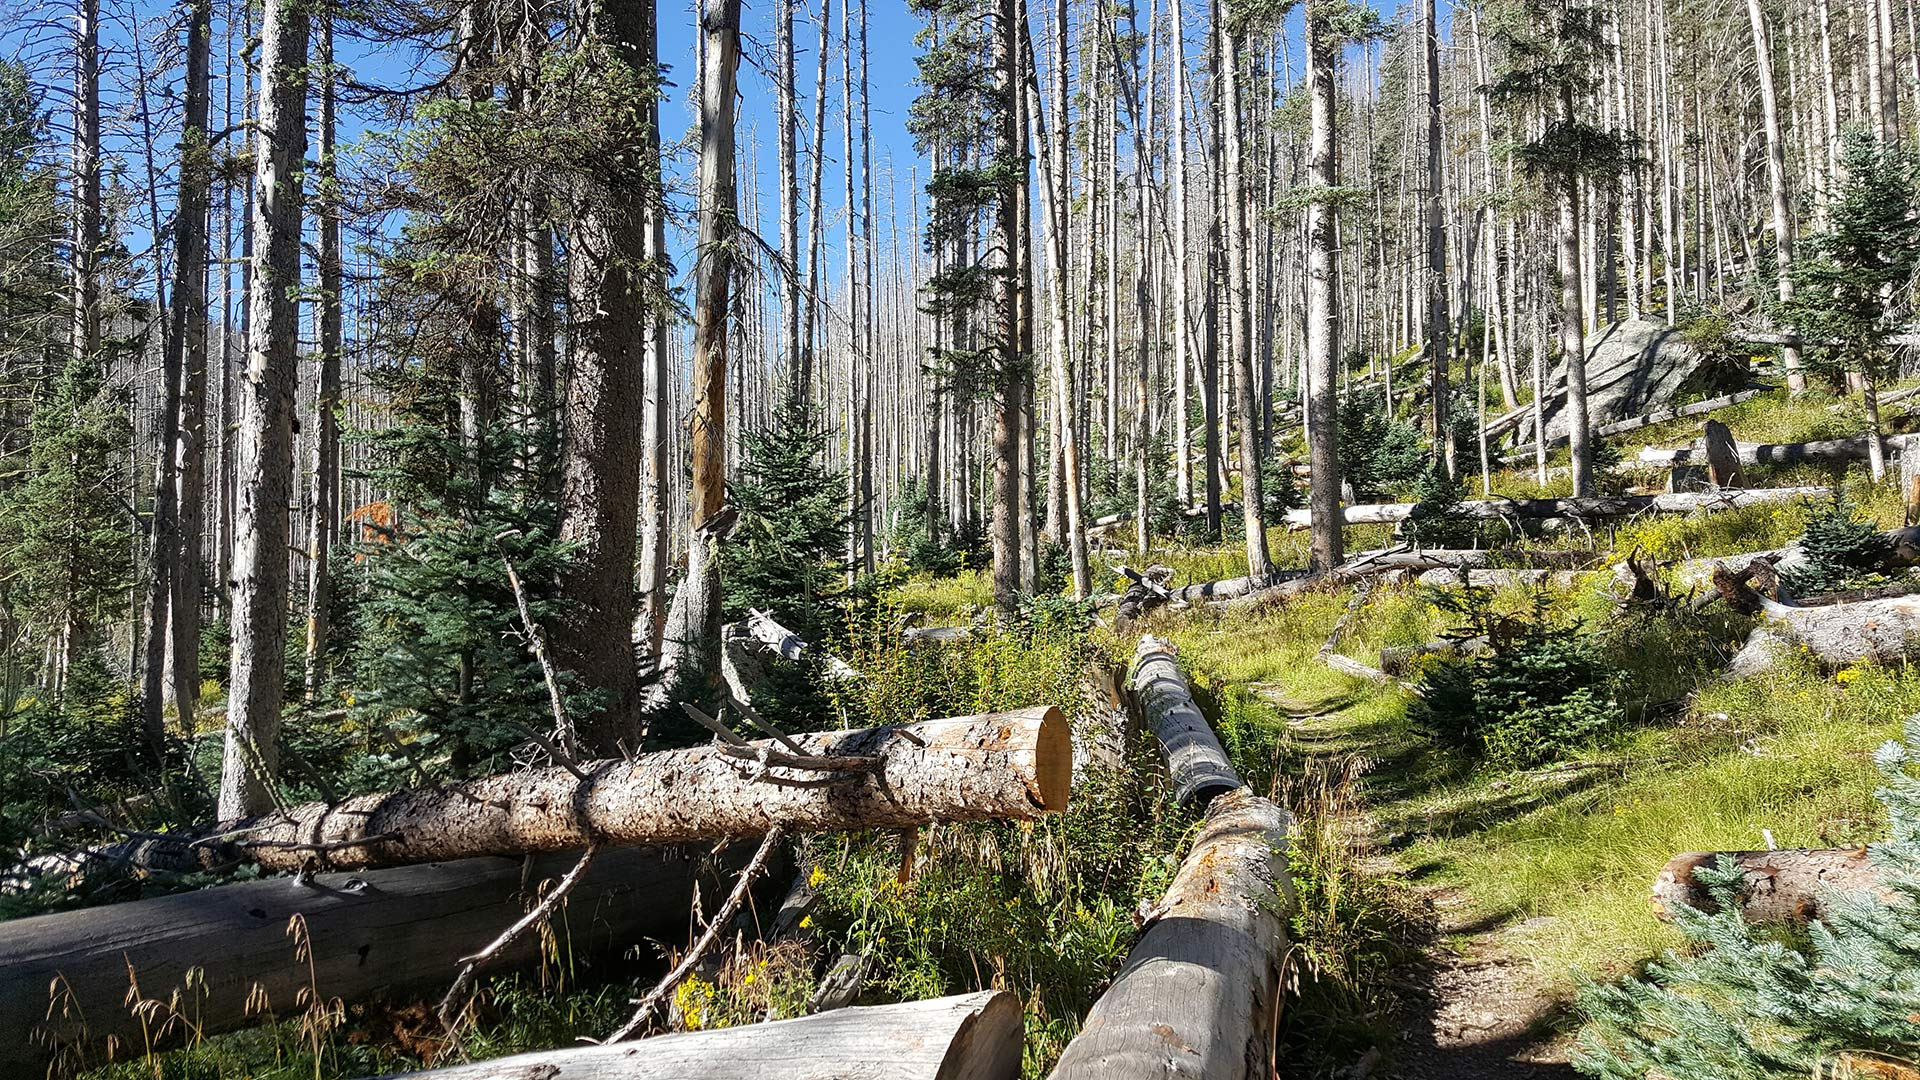 Dense trees grow in a forest in northeastern Arizona.